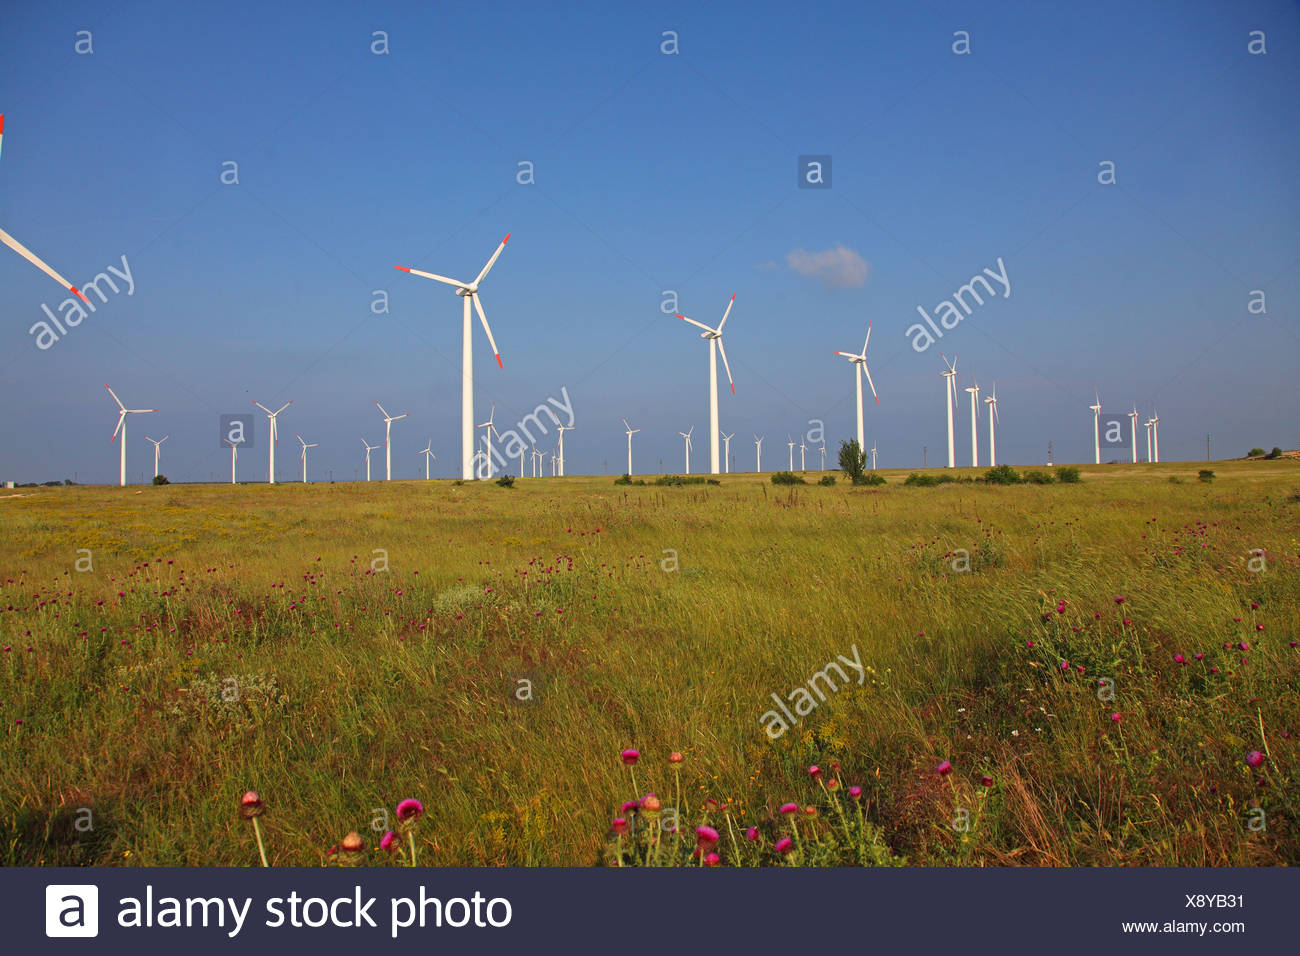 wind farm in meadow, Bulgaria, Kaliakra - Stock Image